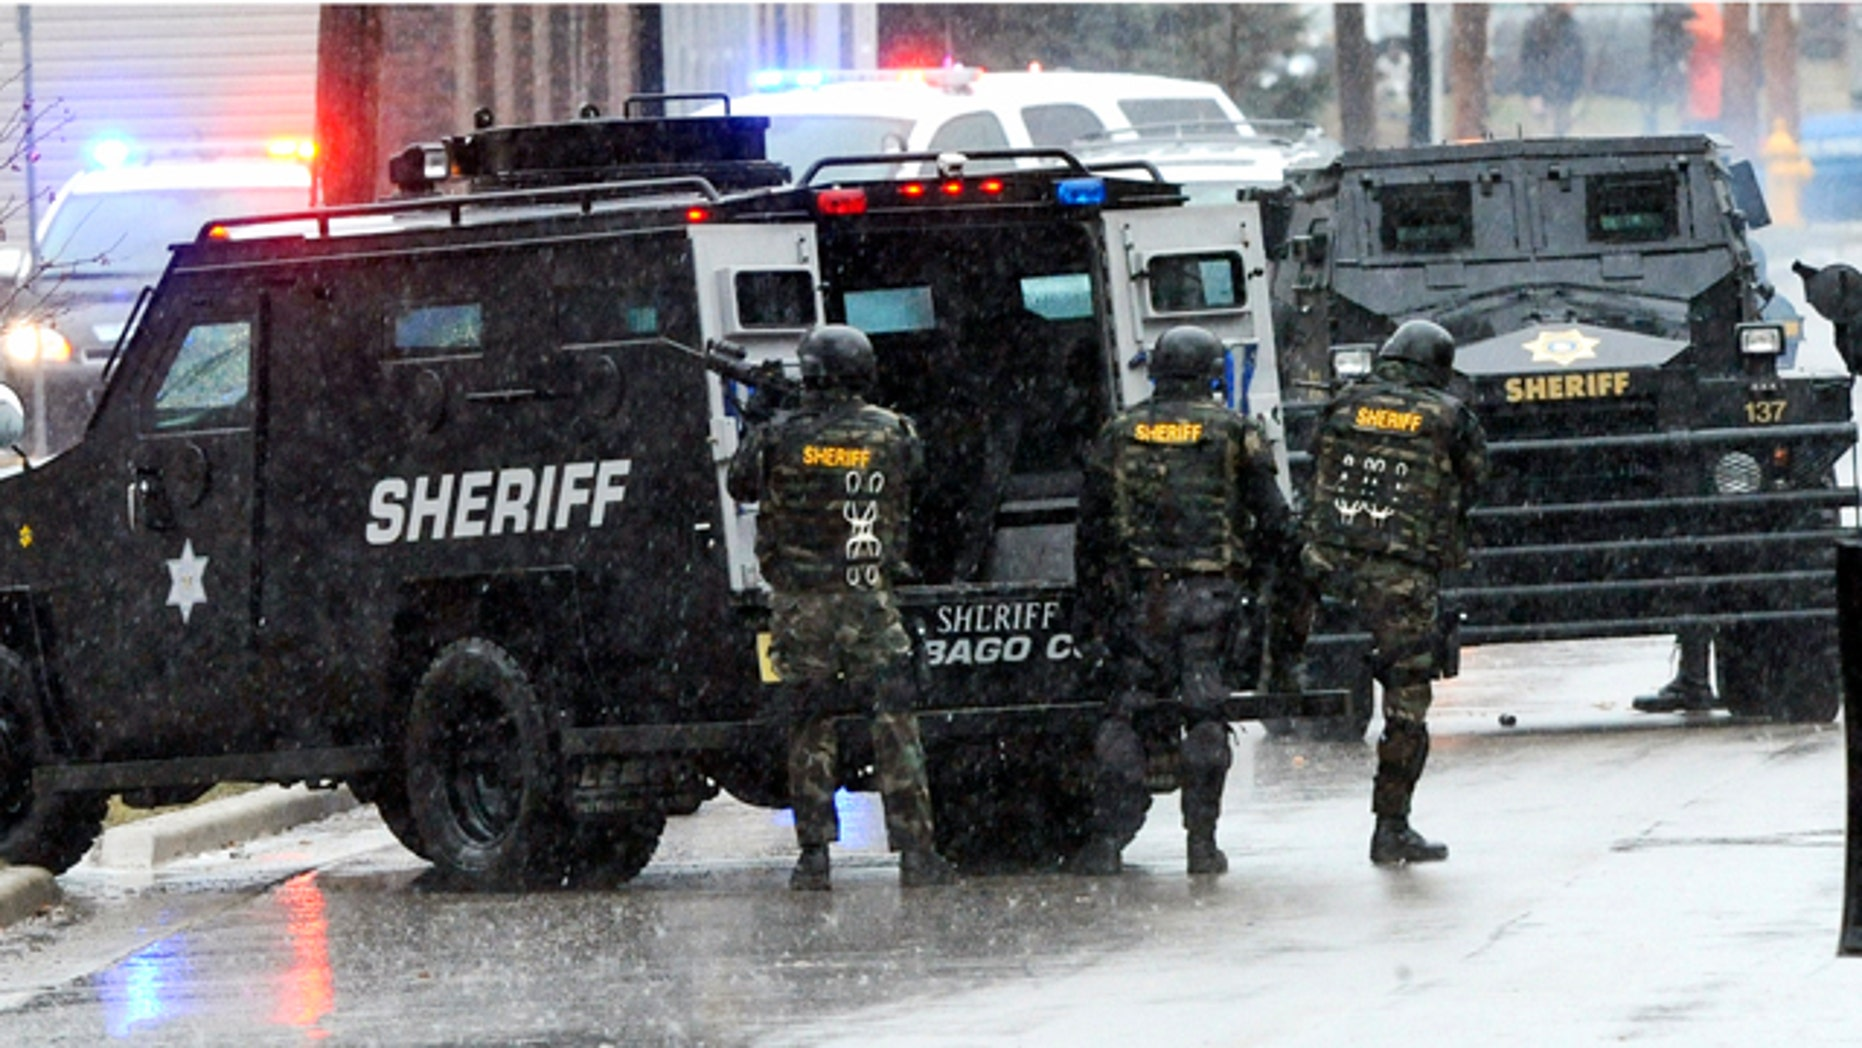 March 20, 2011: Swat team members arrive outside the home of a suspect who shot a Fond du Lac police officer